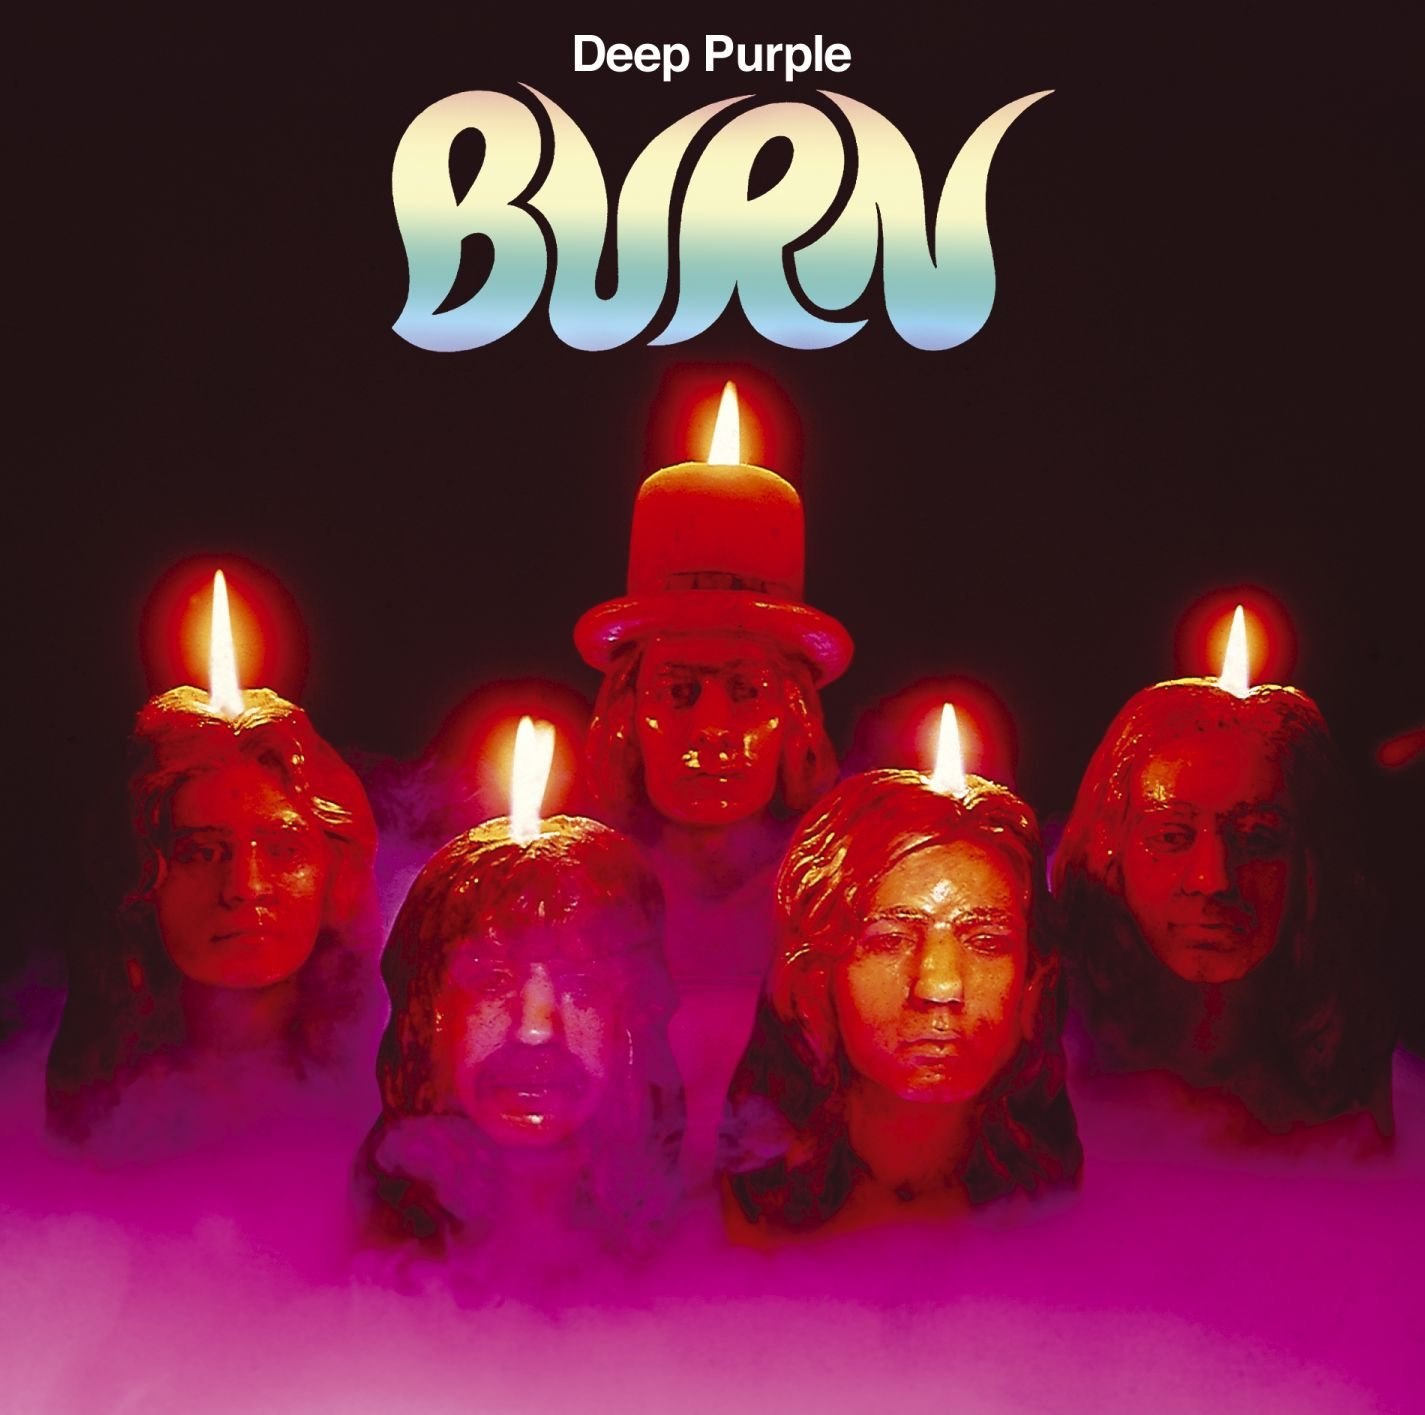 CD : Deep Purple - Burn (Bonus Tracks, Remastered)